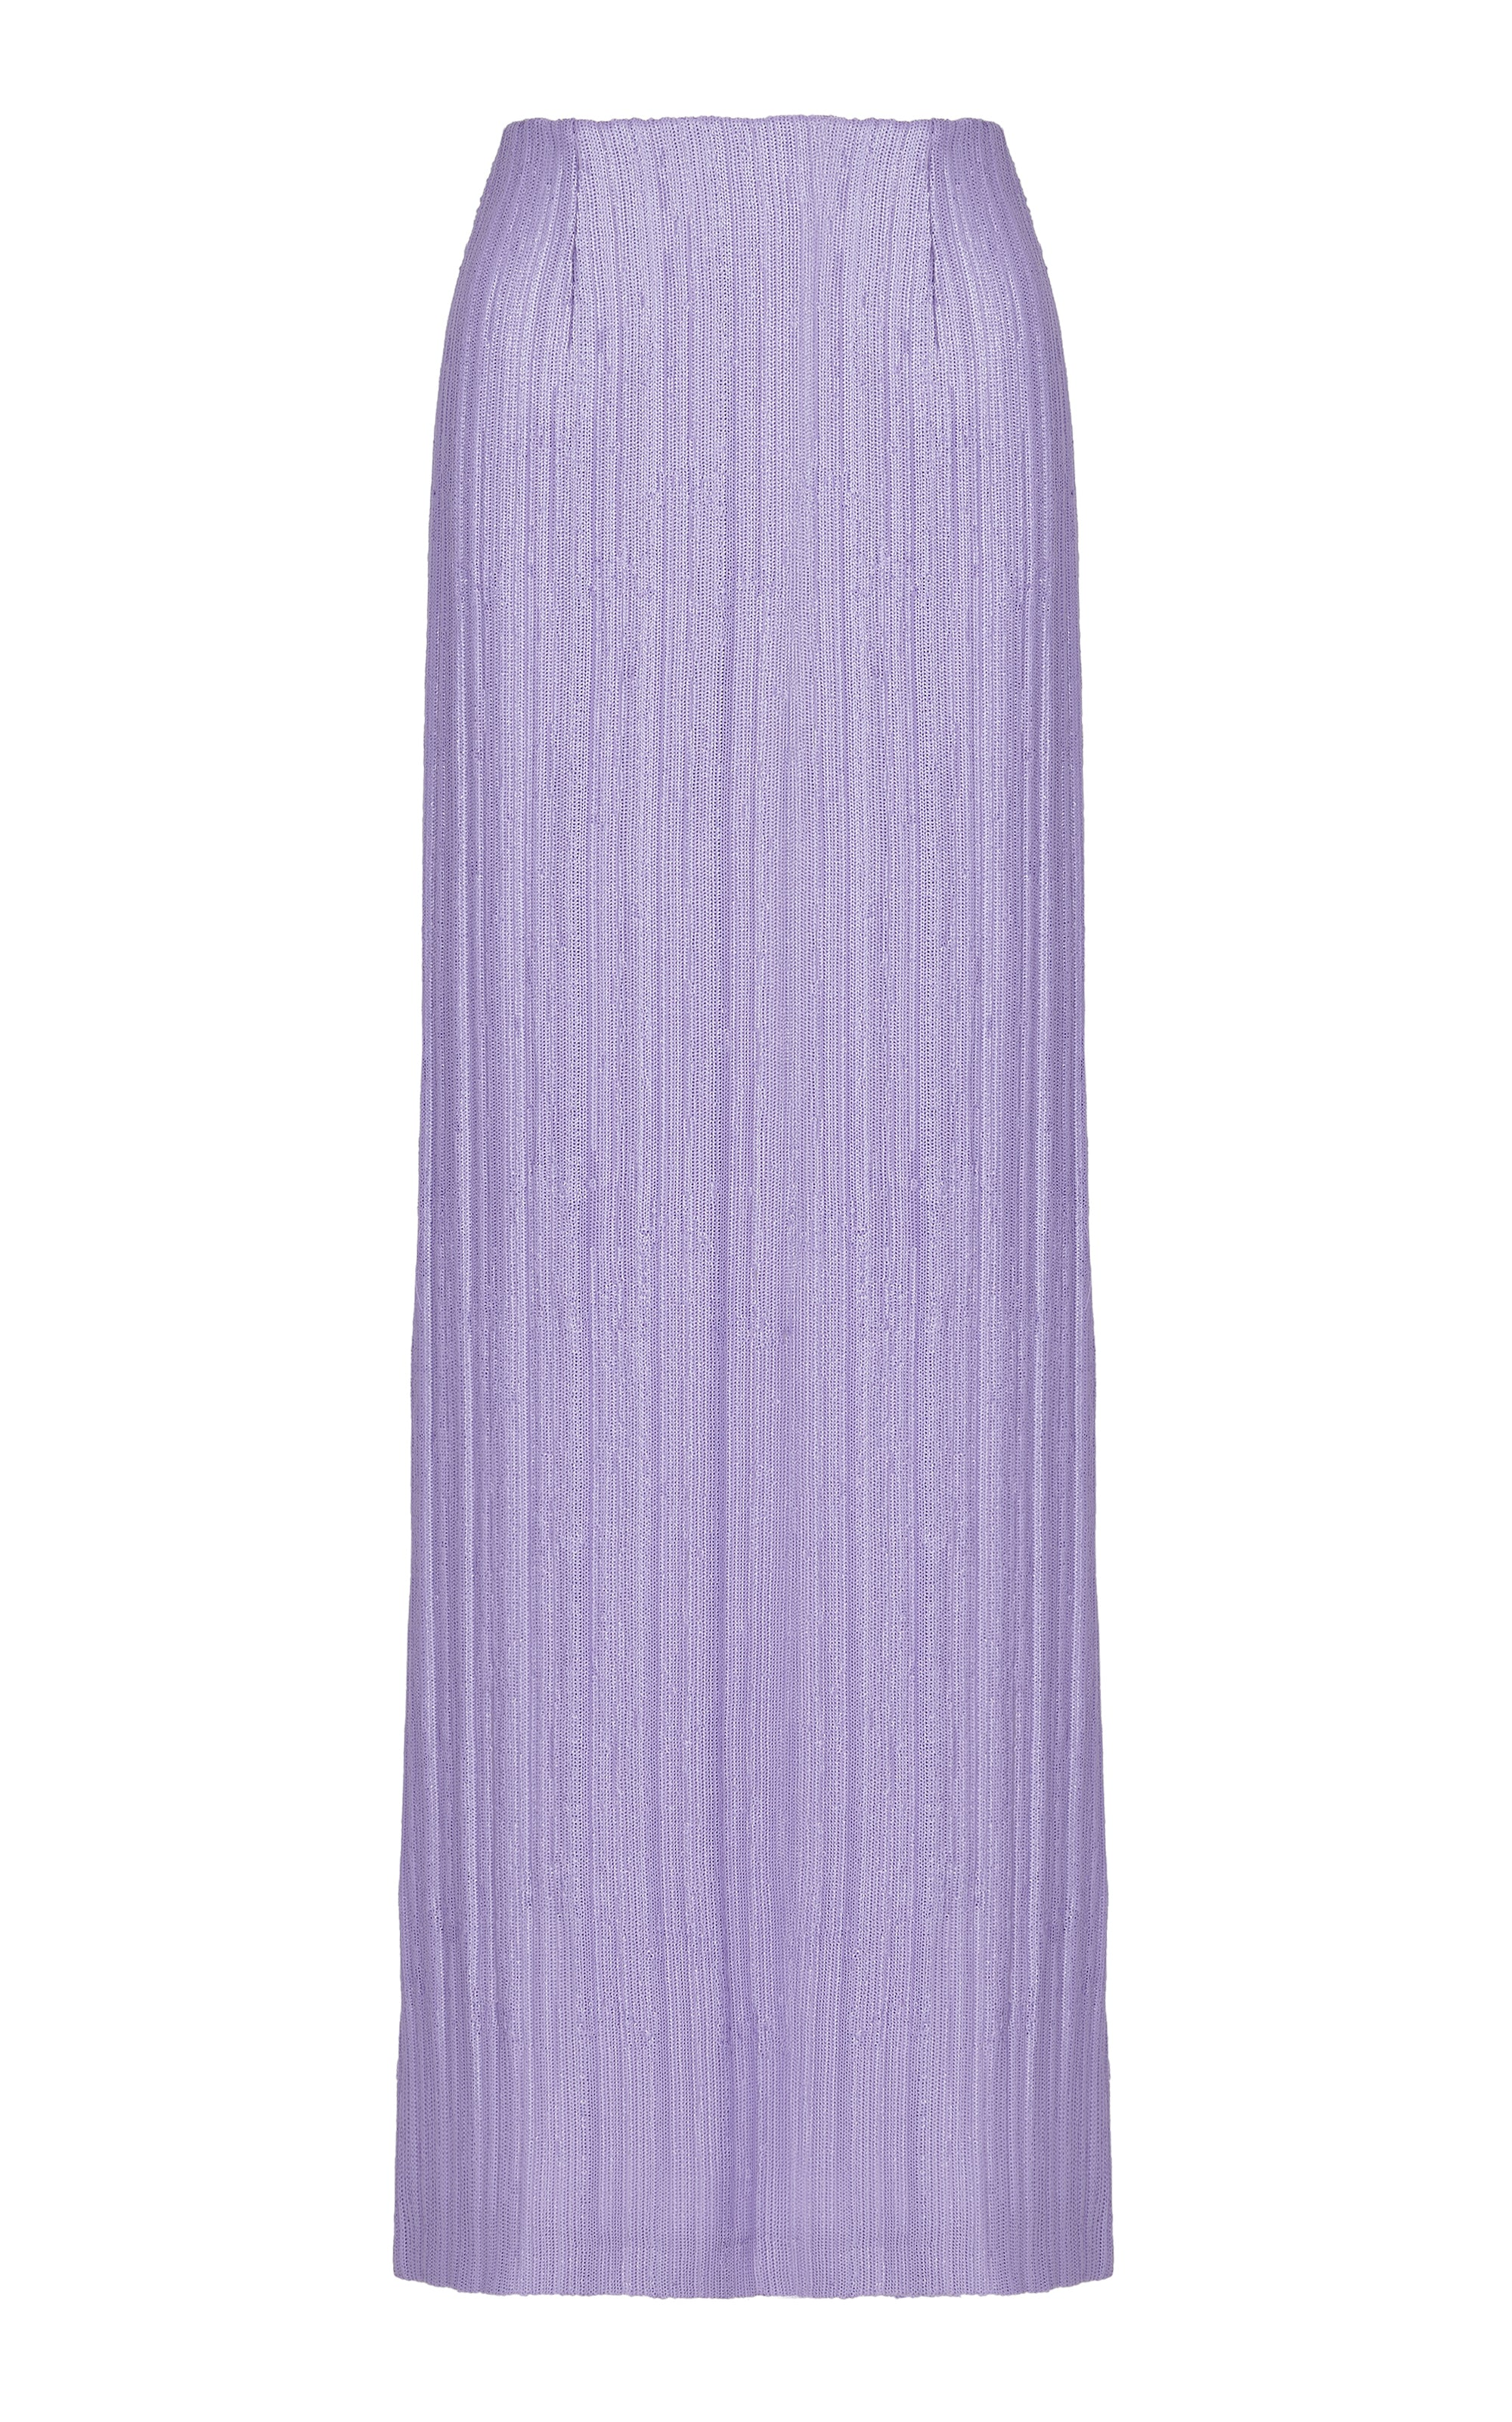 LILAC SEQUIN LONG SKIRT